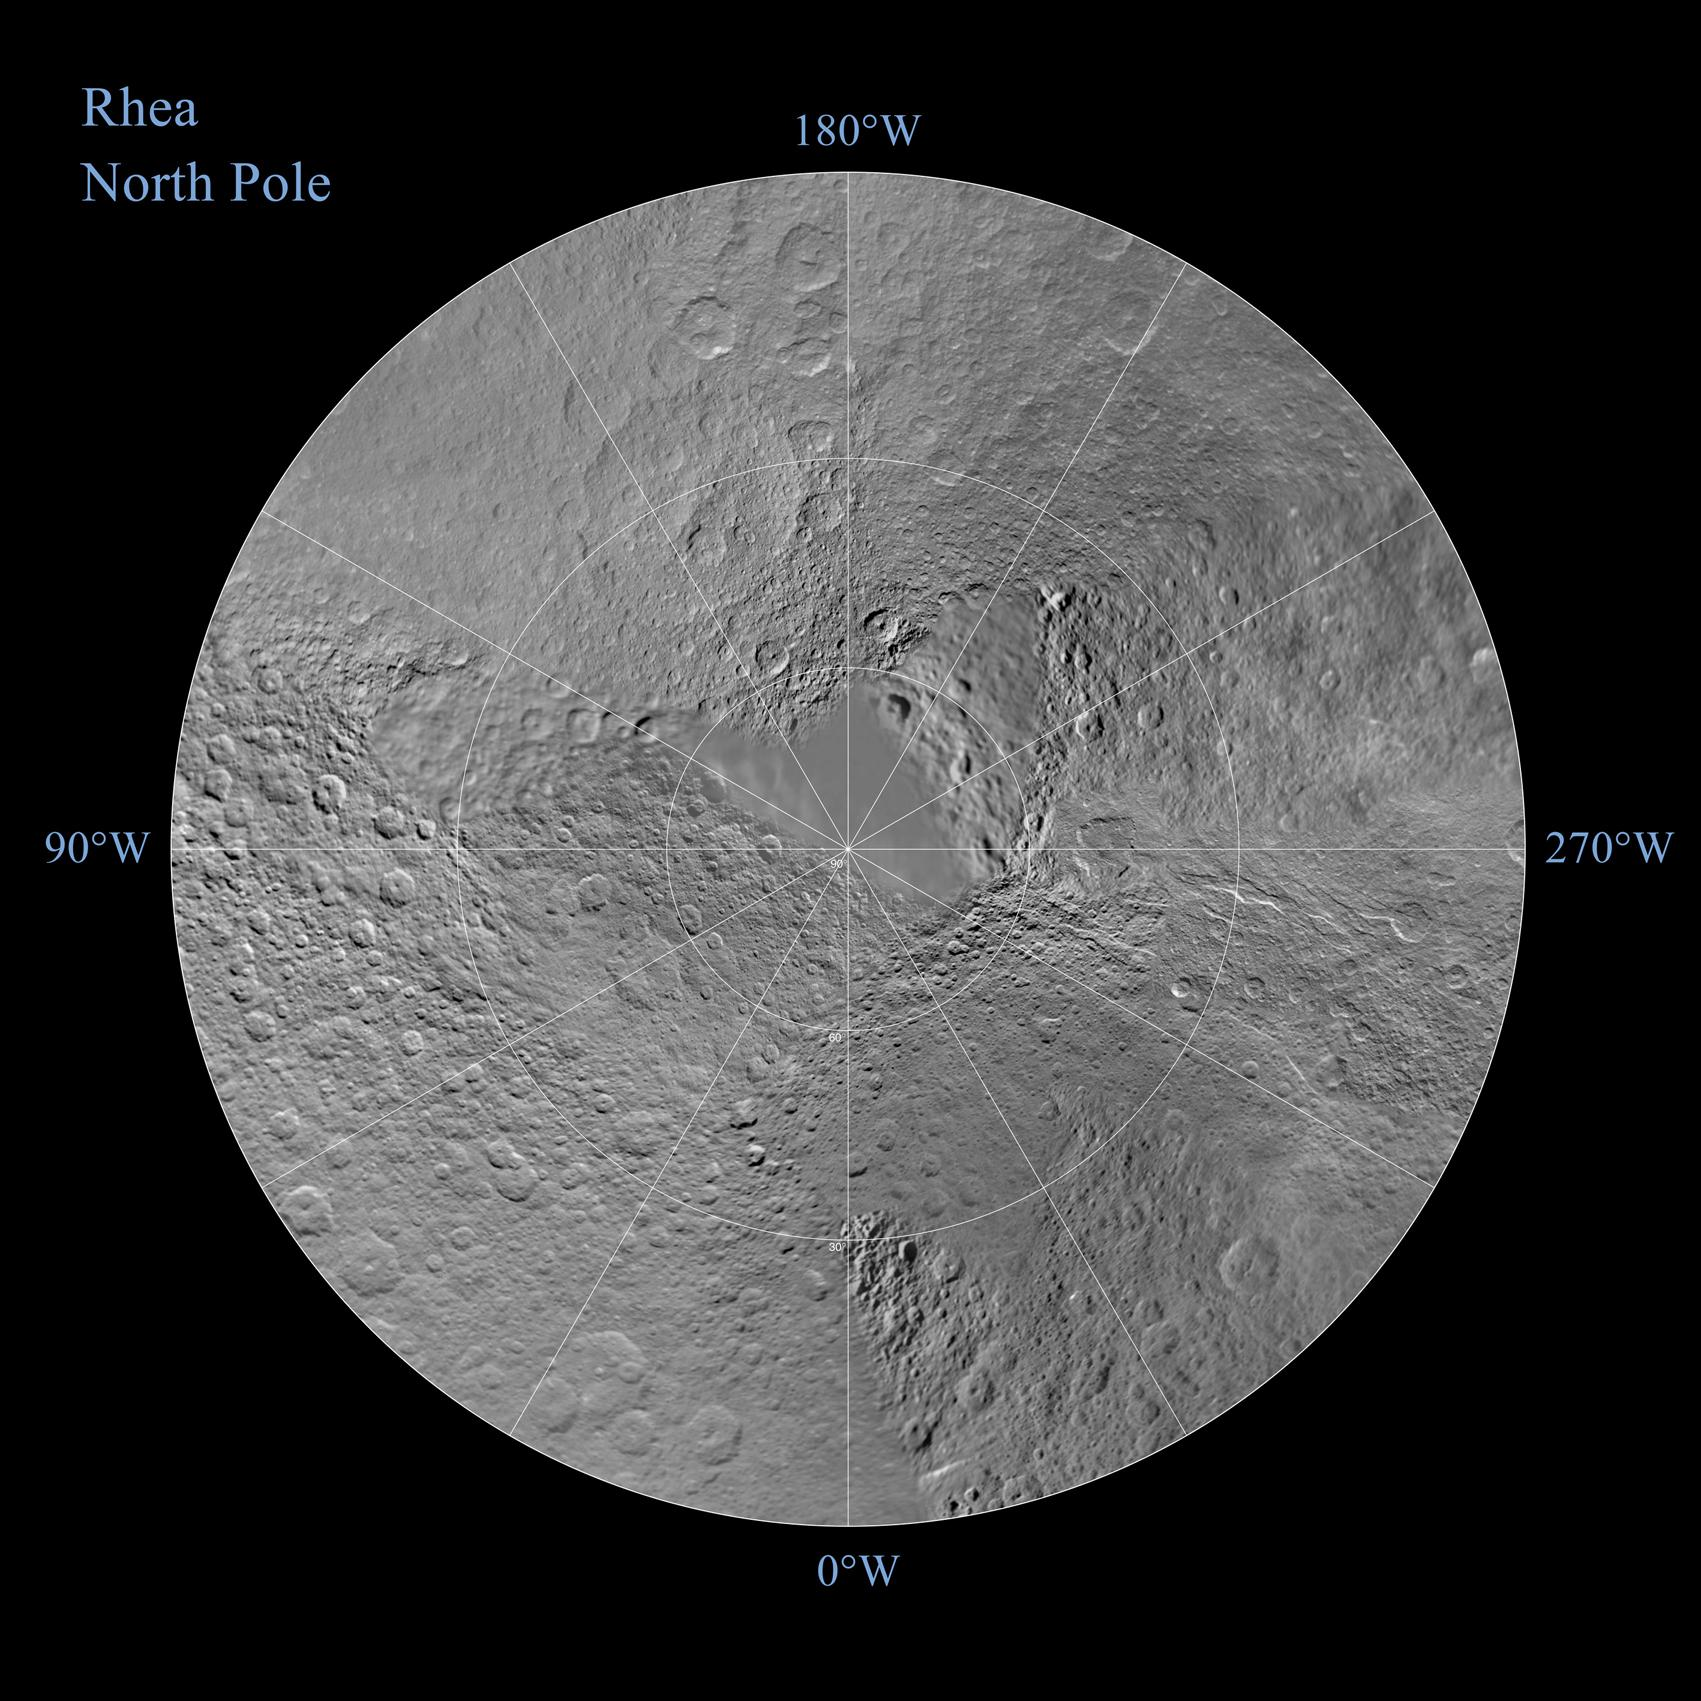 A polar stereographic map of the northern hemisphere Rhea